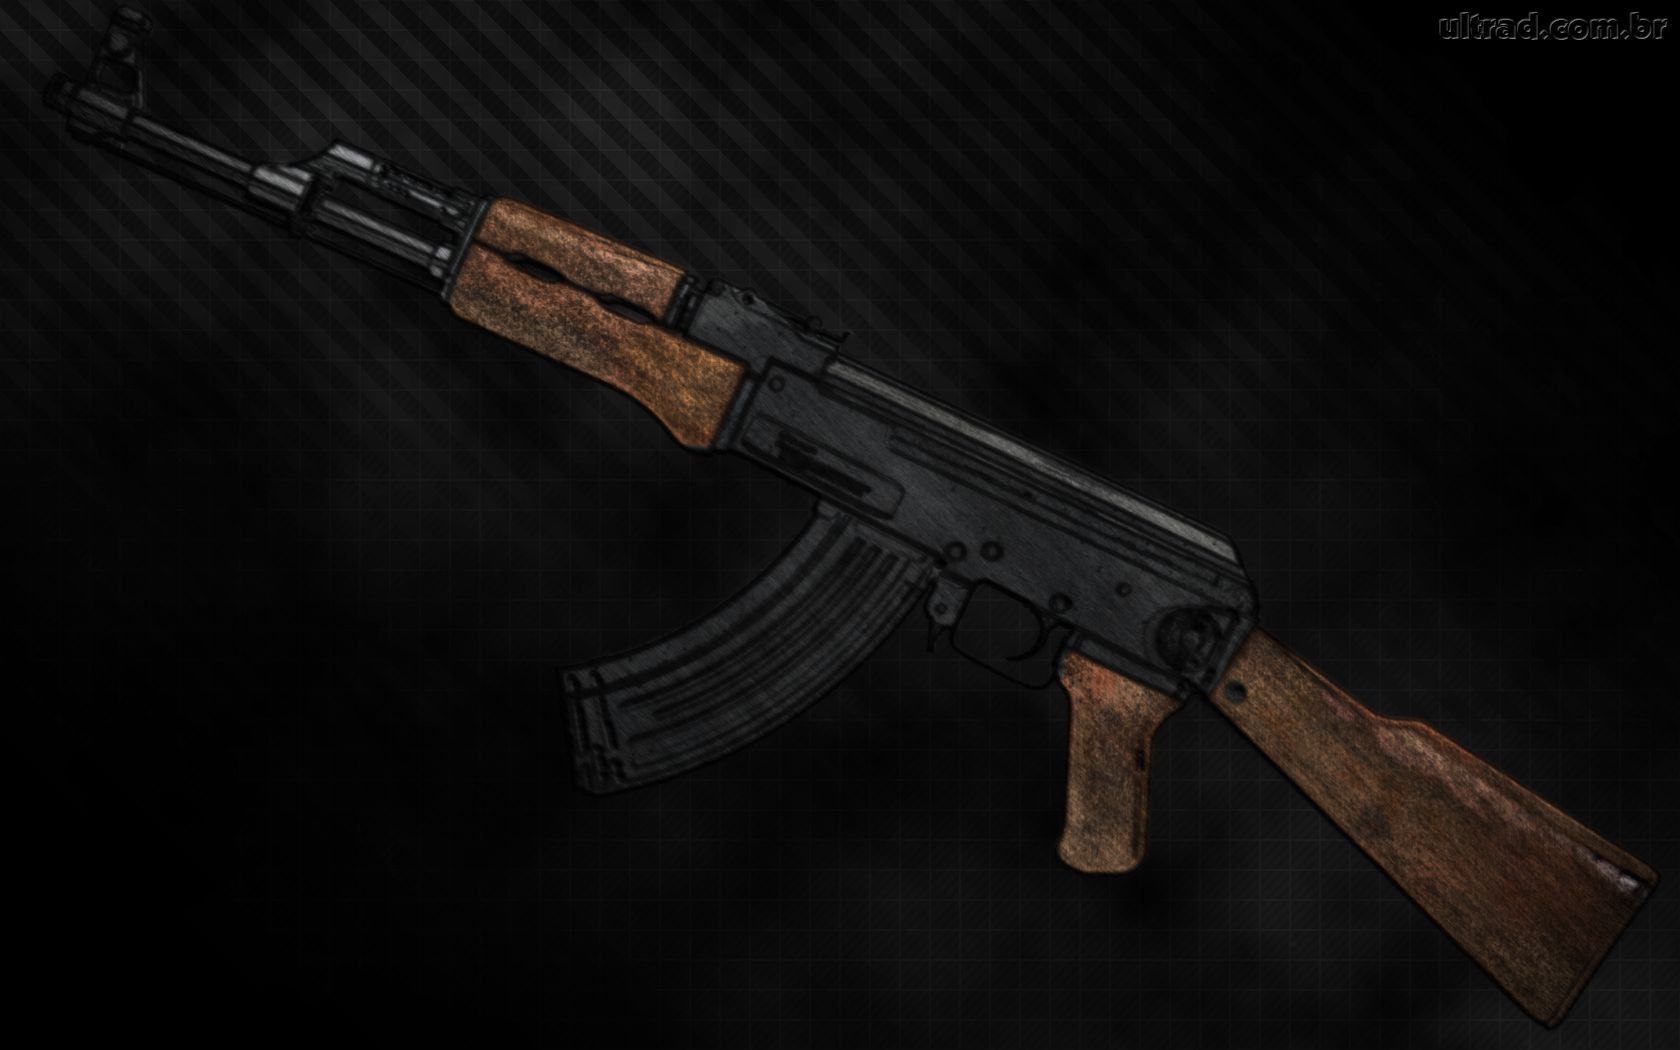 Ak 47 Wallpaper: AK 47 Wallpapers Free